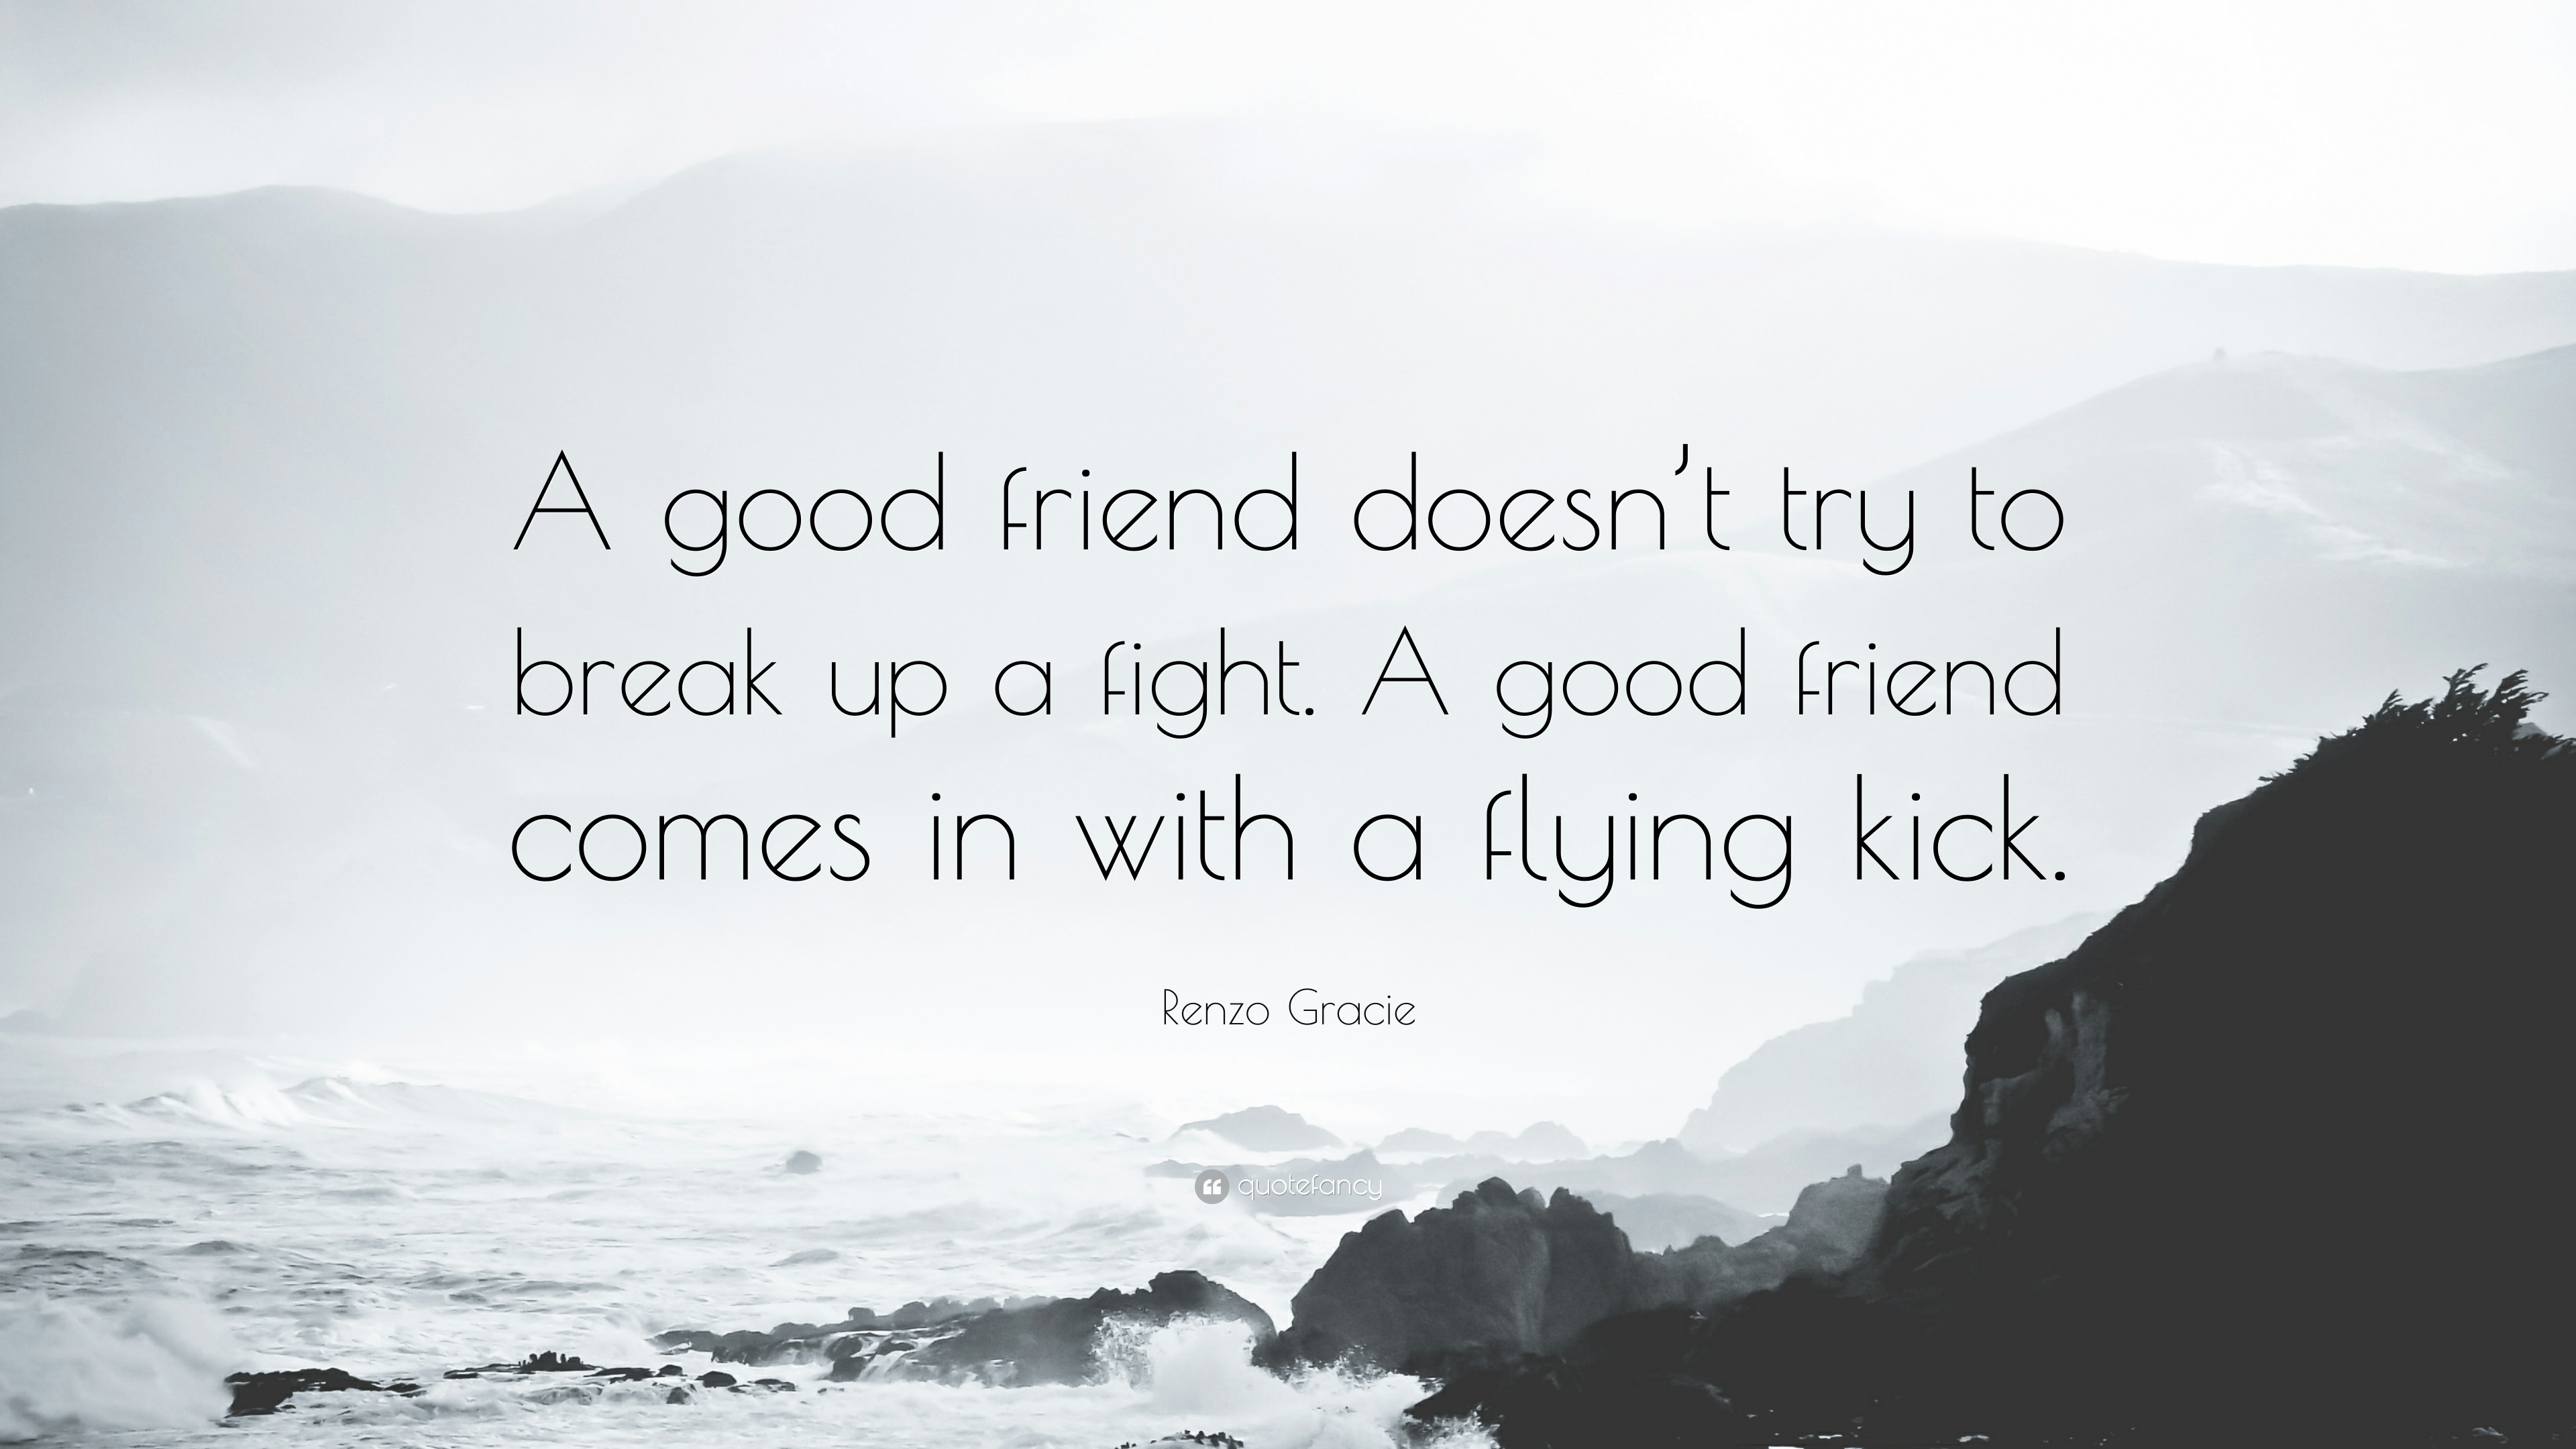 renzo gracie quote a good friend doesn t try to break up a fight